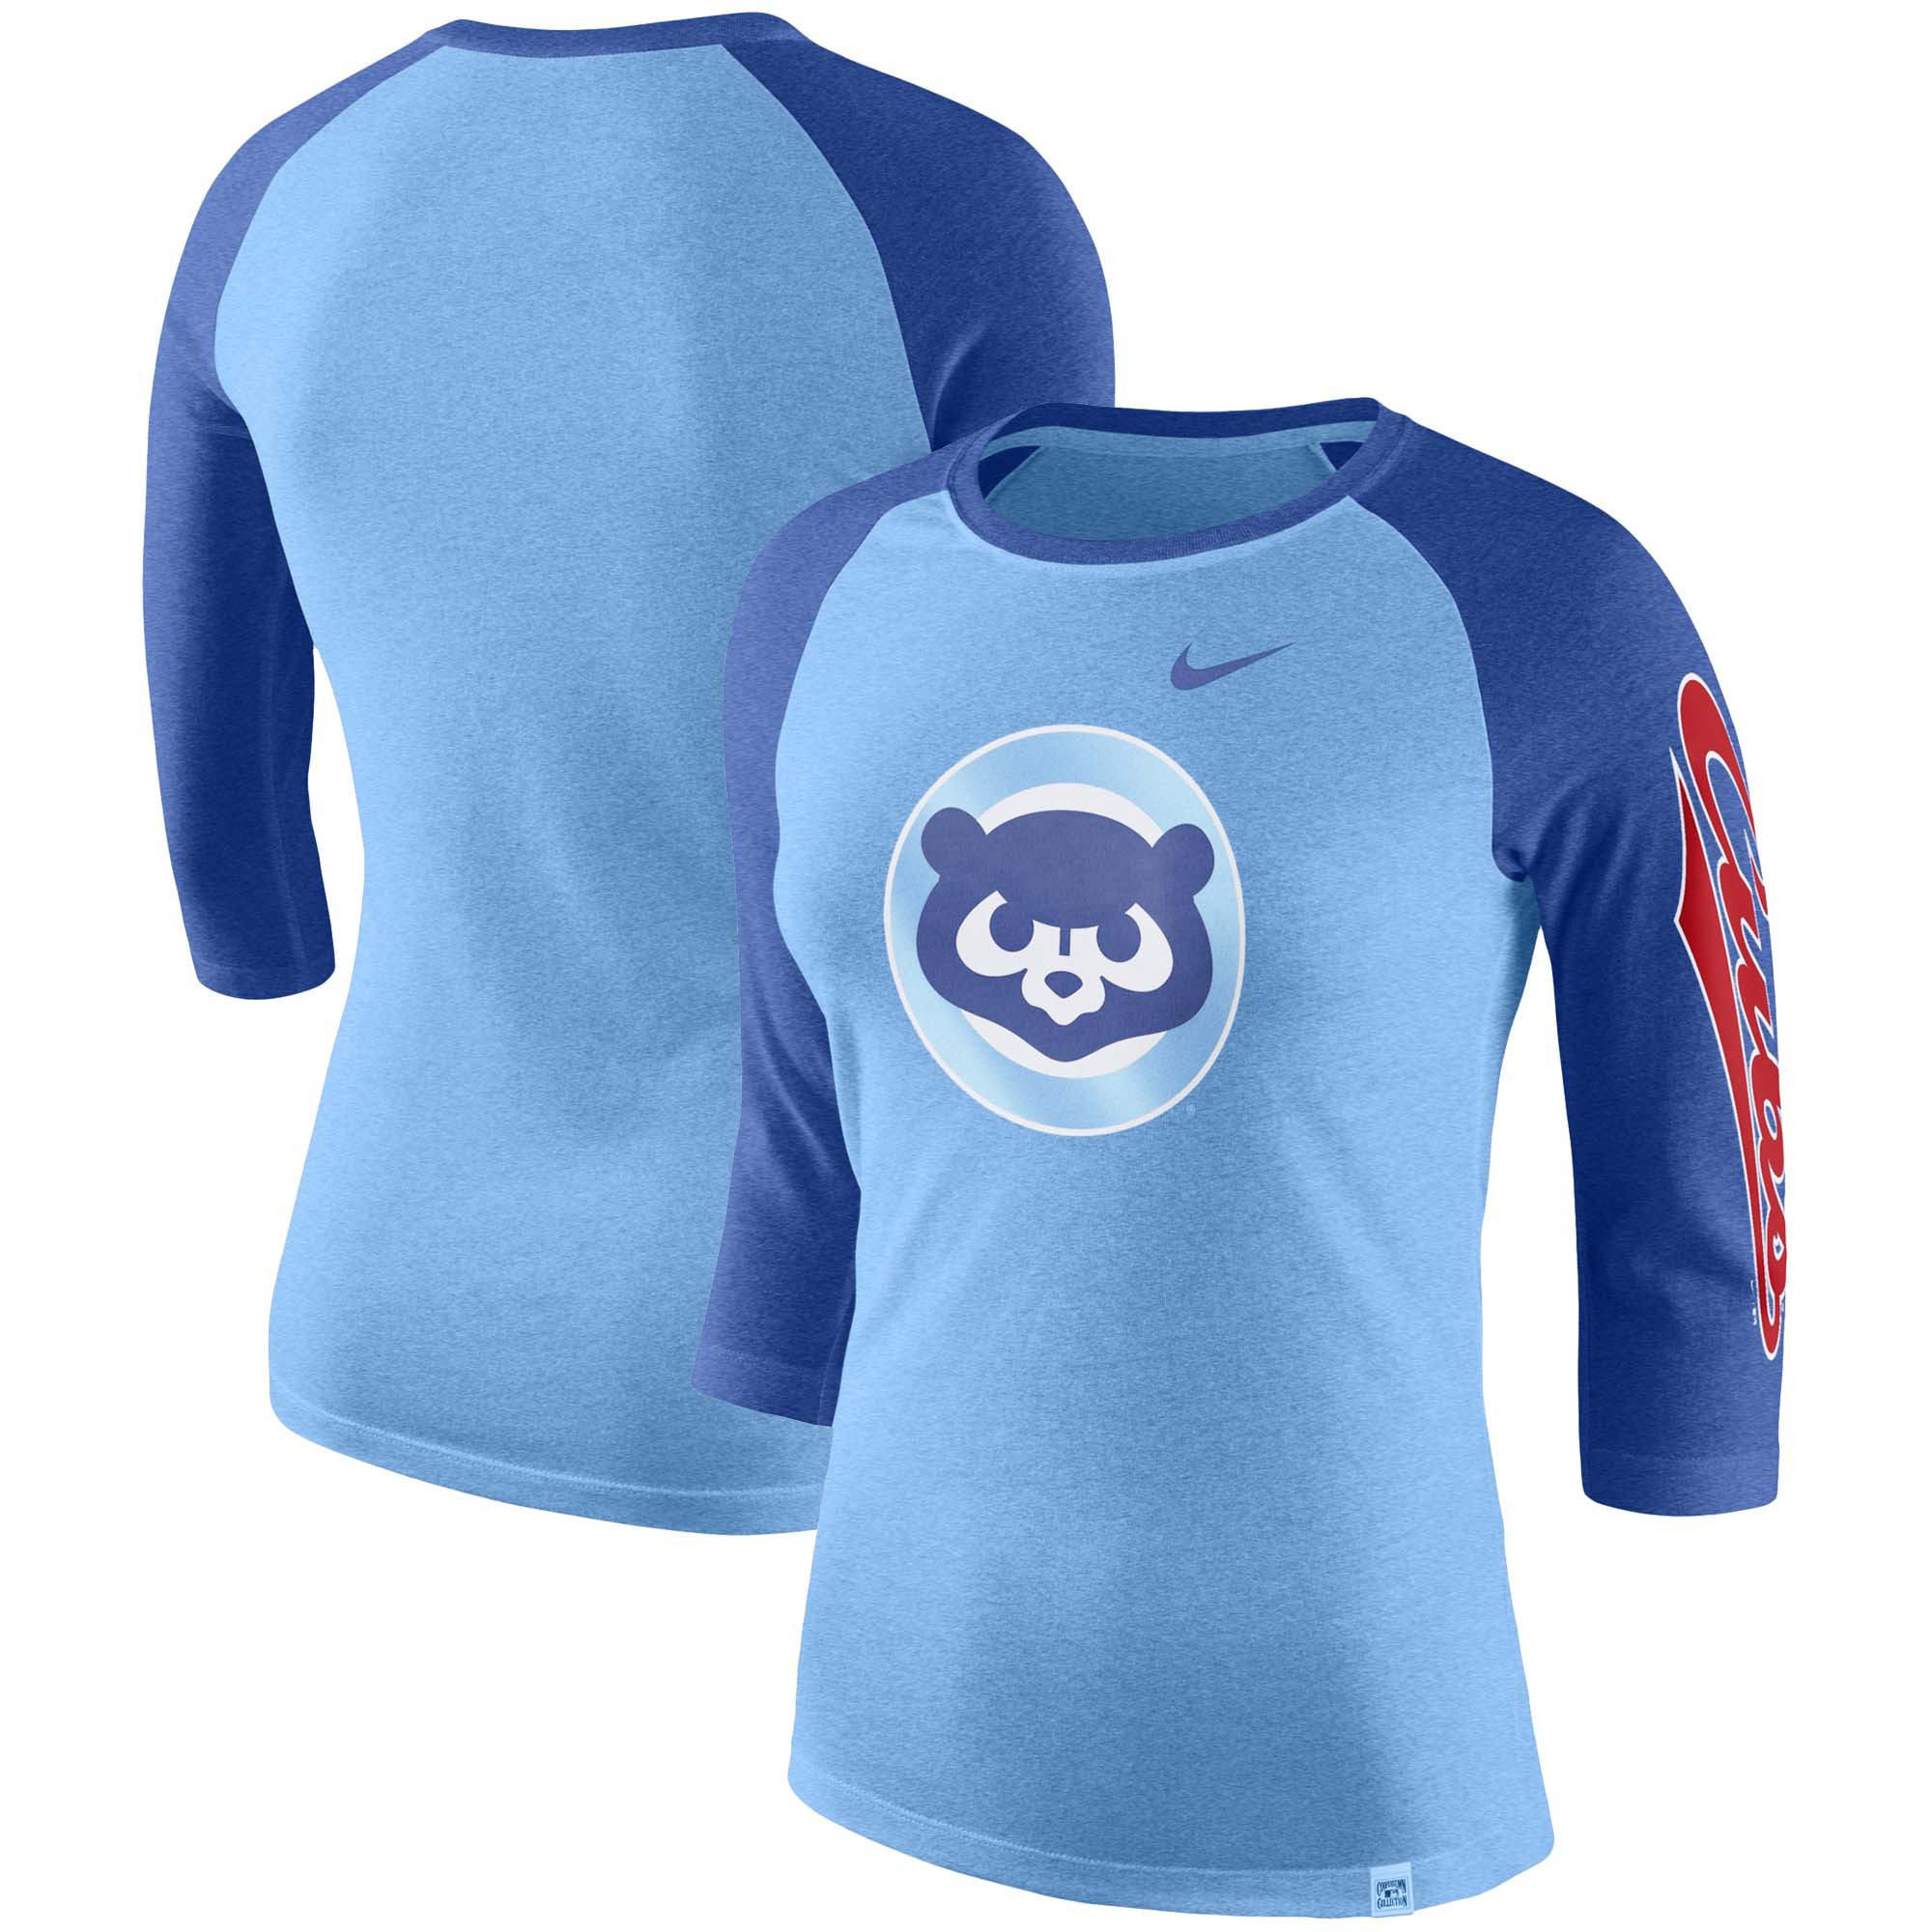 Chicago Cubs Nike Women's Vintage Logo Tri-Blend 3/4-Sleeve Raglan T-Shirt - Royal